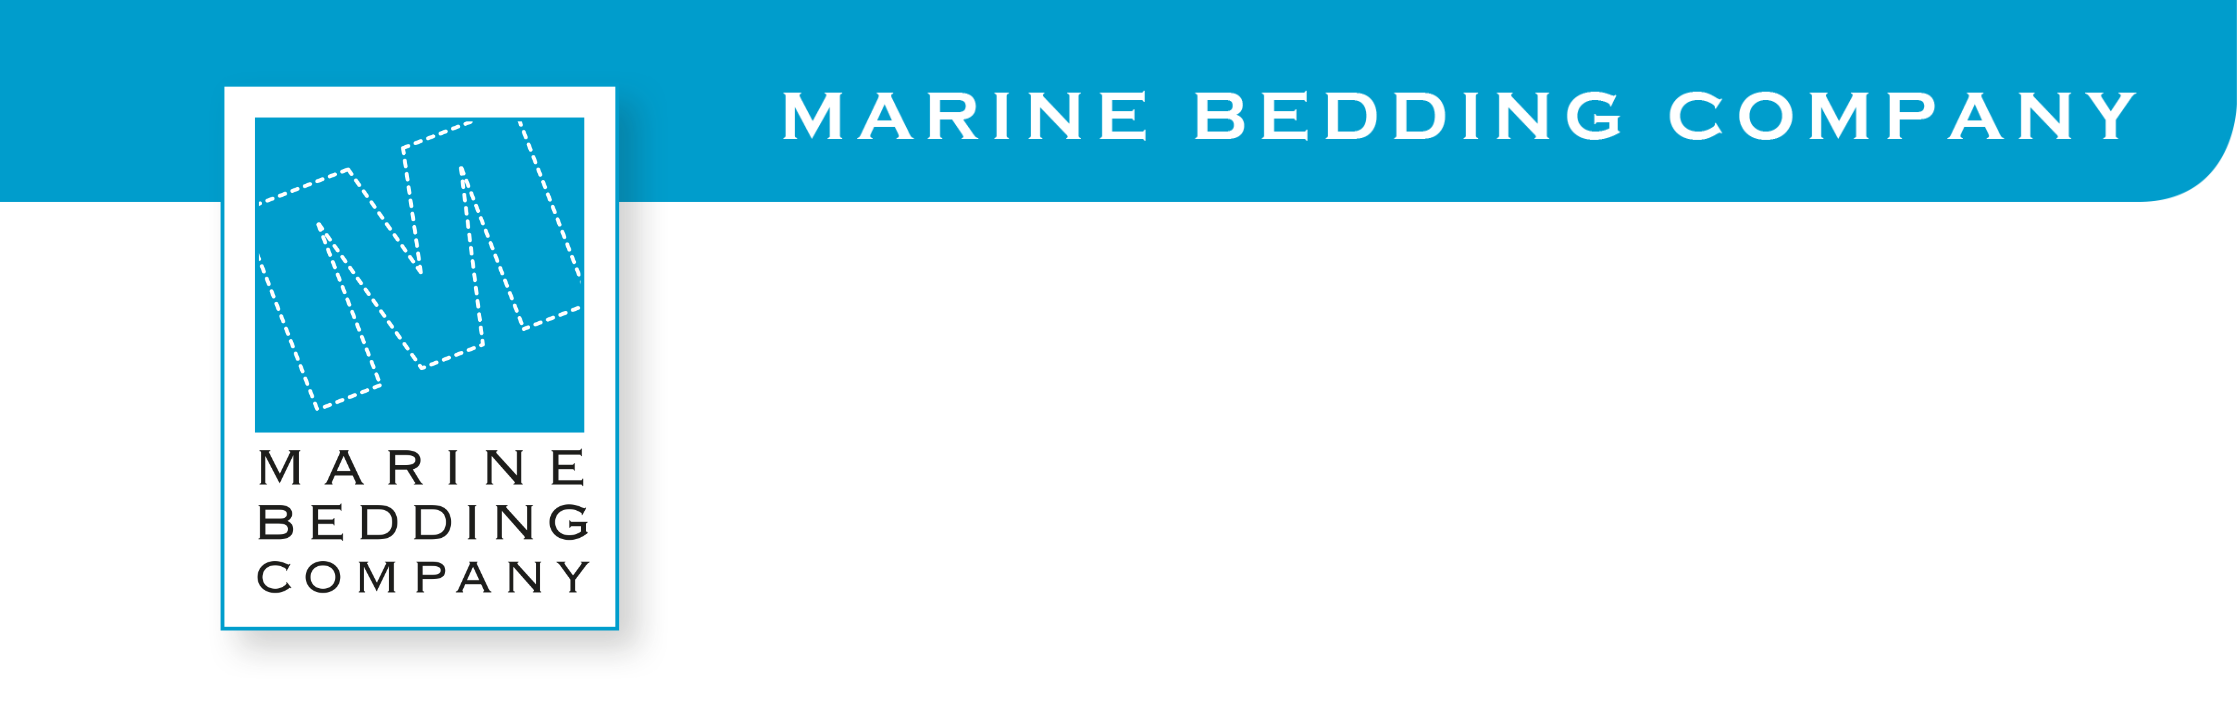 Custom Boat Bedding From The Marine Bedding Company